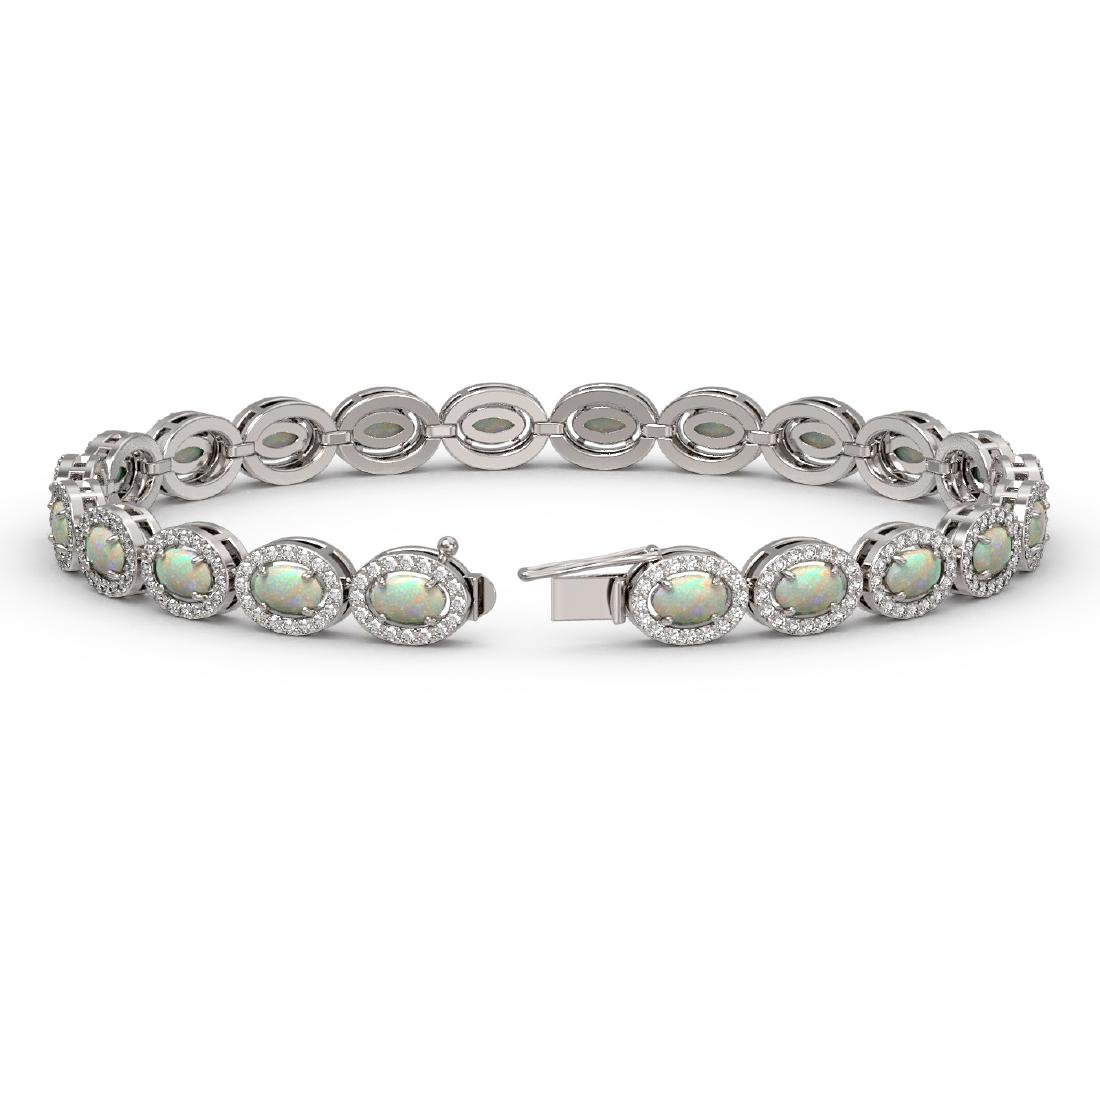 8.28 CTW Opal & Diamond Halo Bracelet 10K White Gold - 2